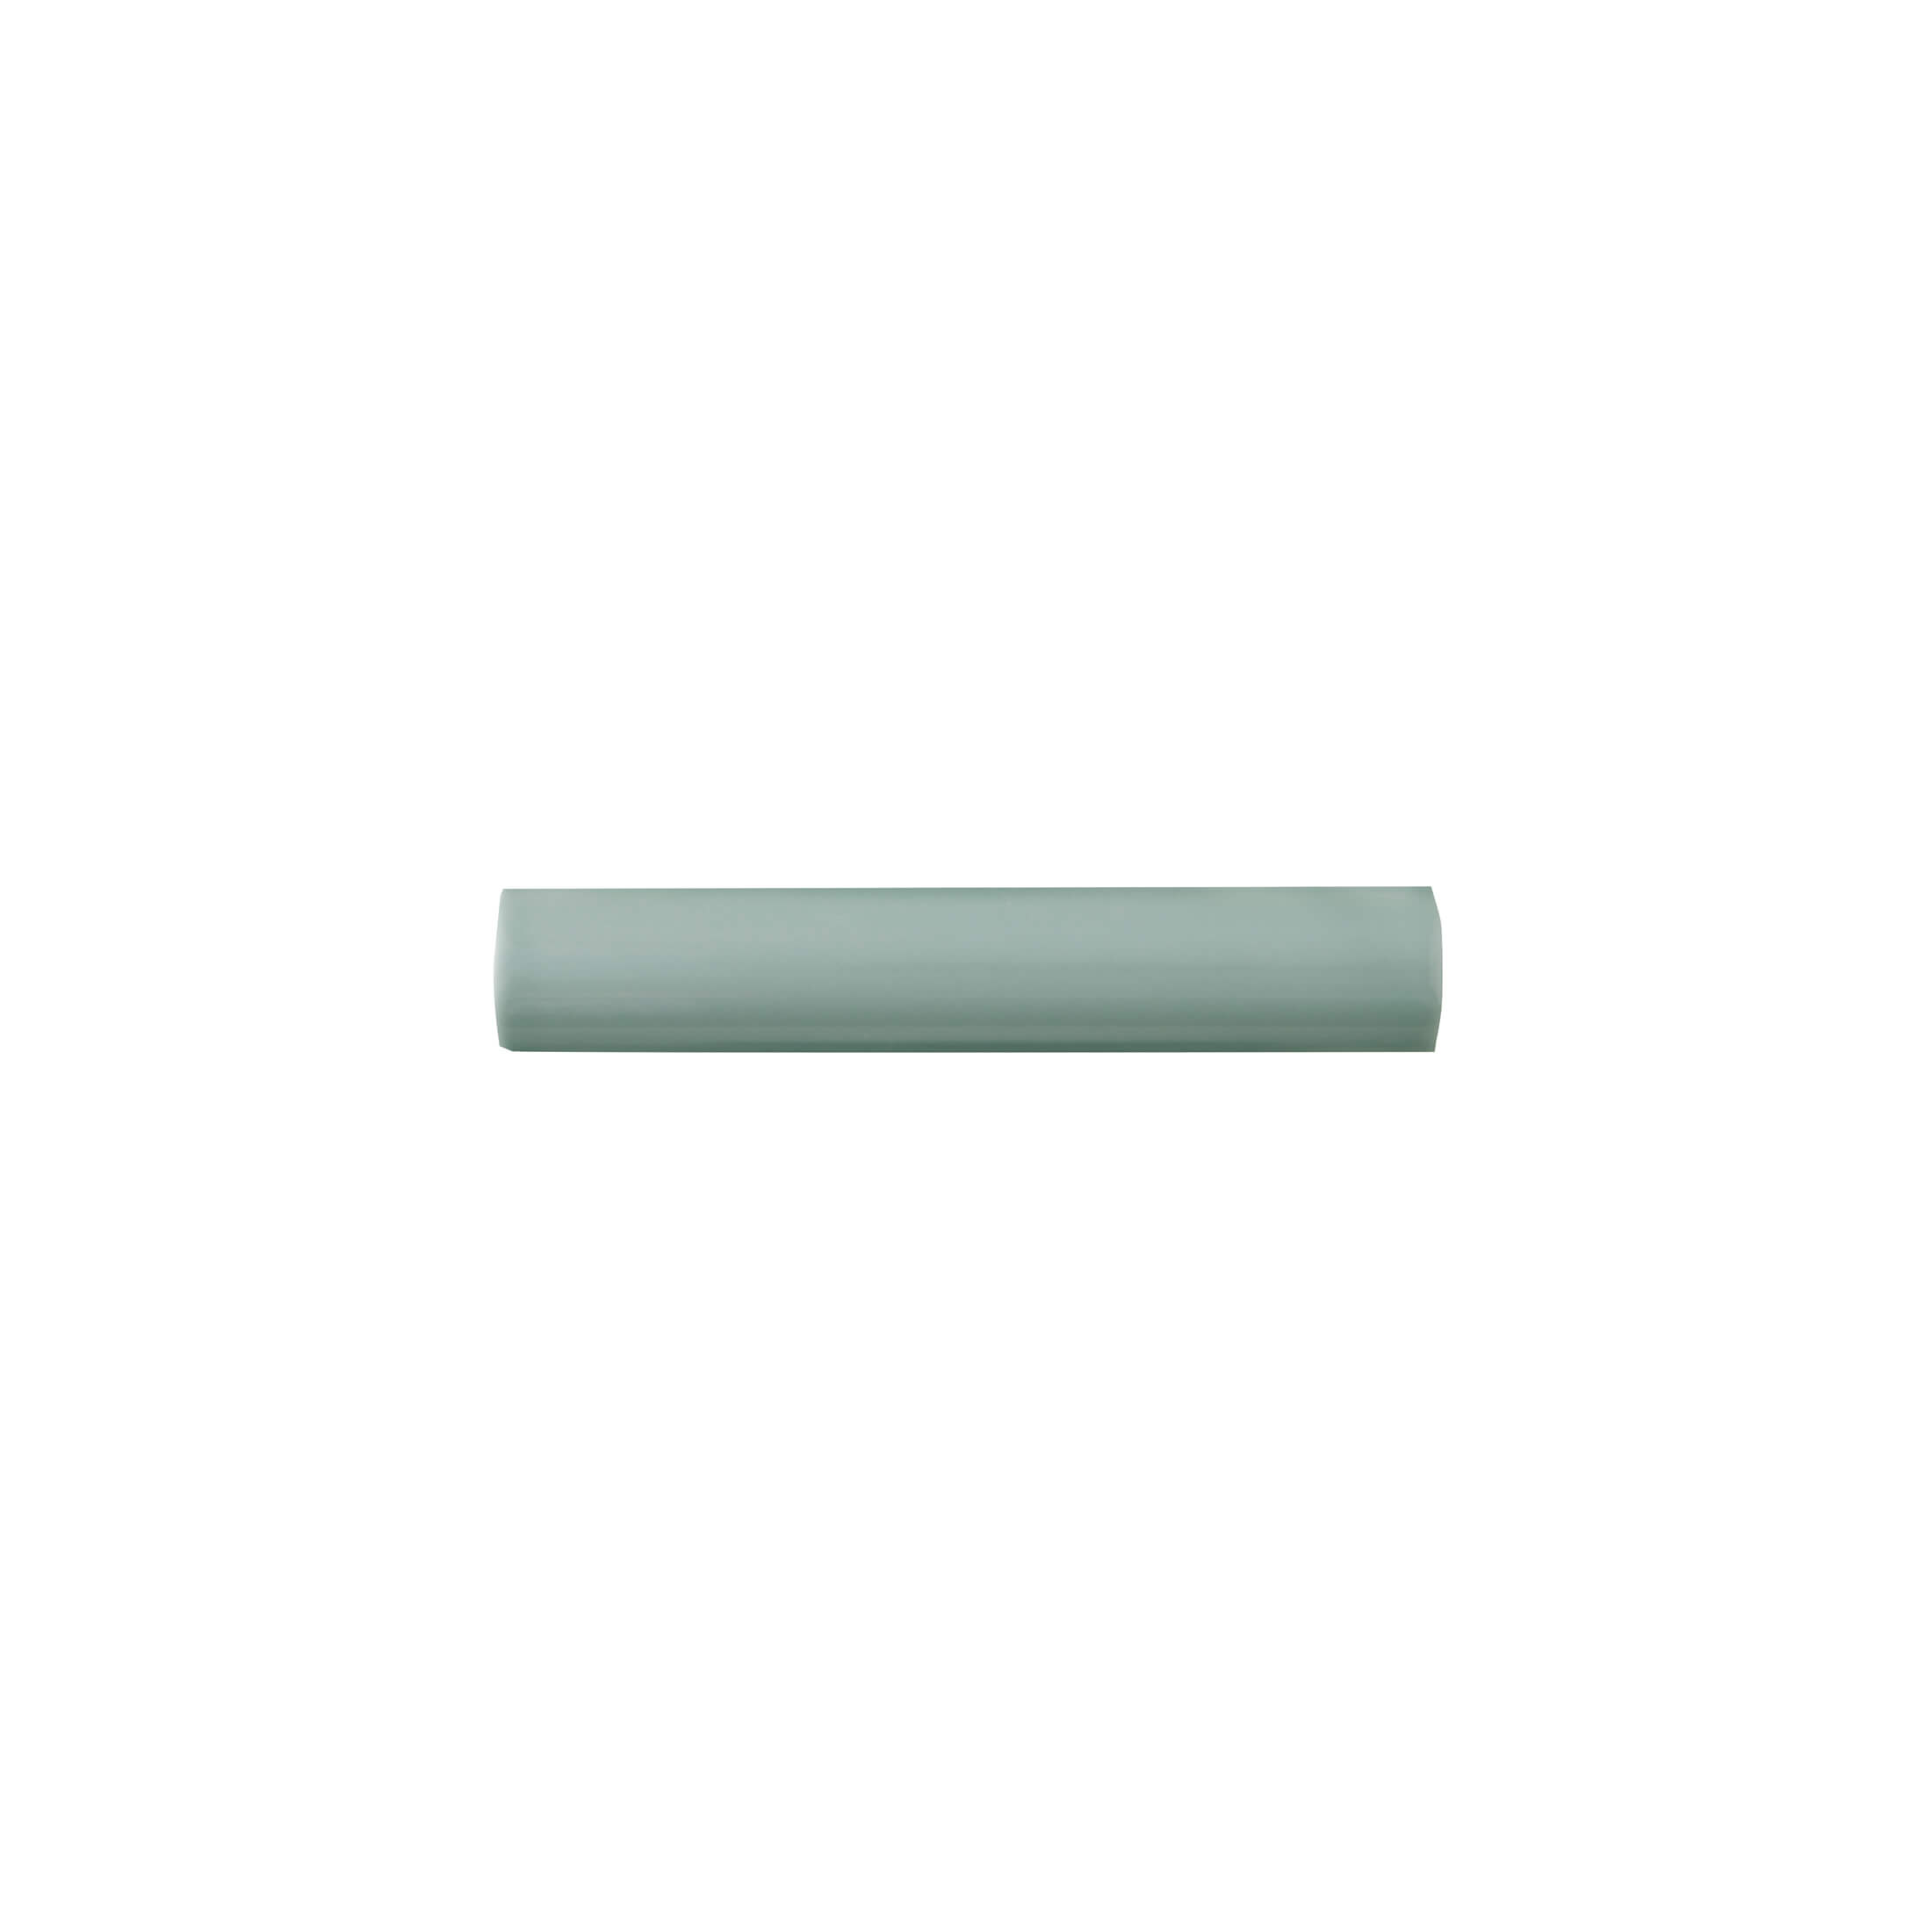 ADEX-ADNE5619-BARRA-LISA  -2.5 cm-15 cm-NERI>SEA GREEN